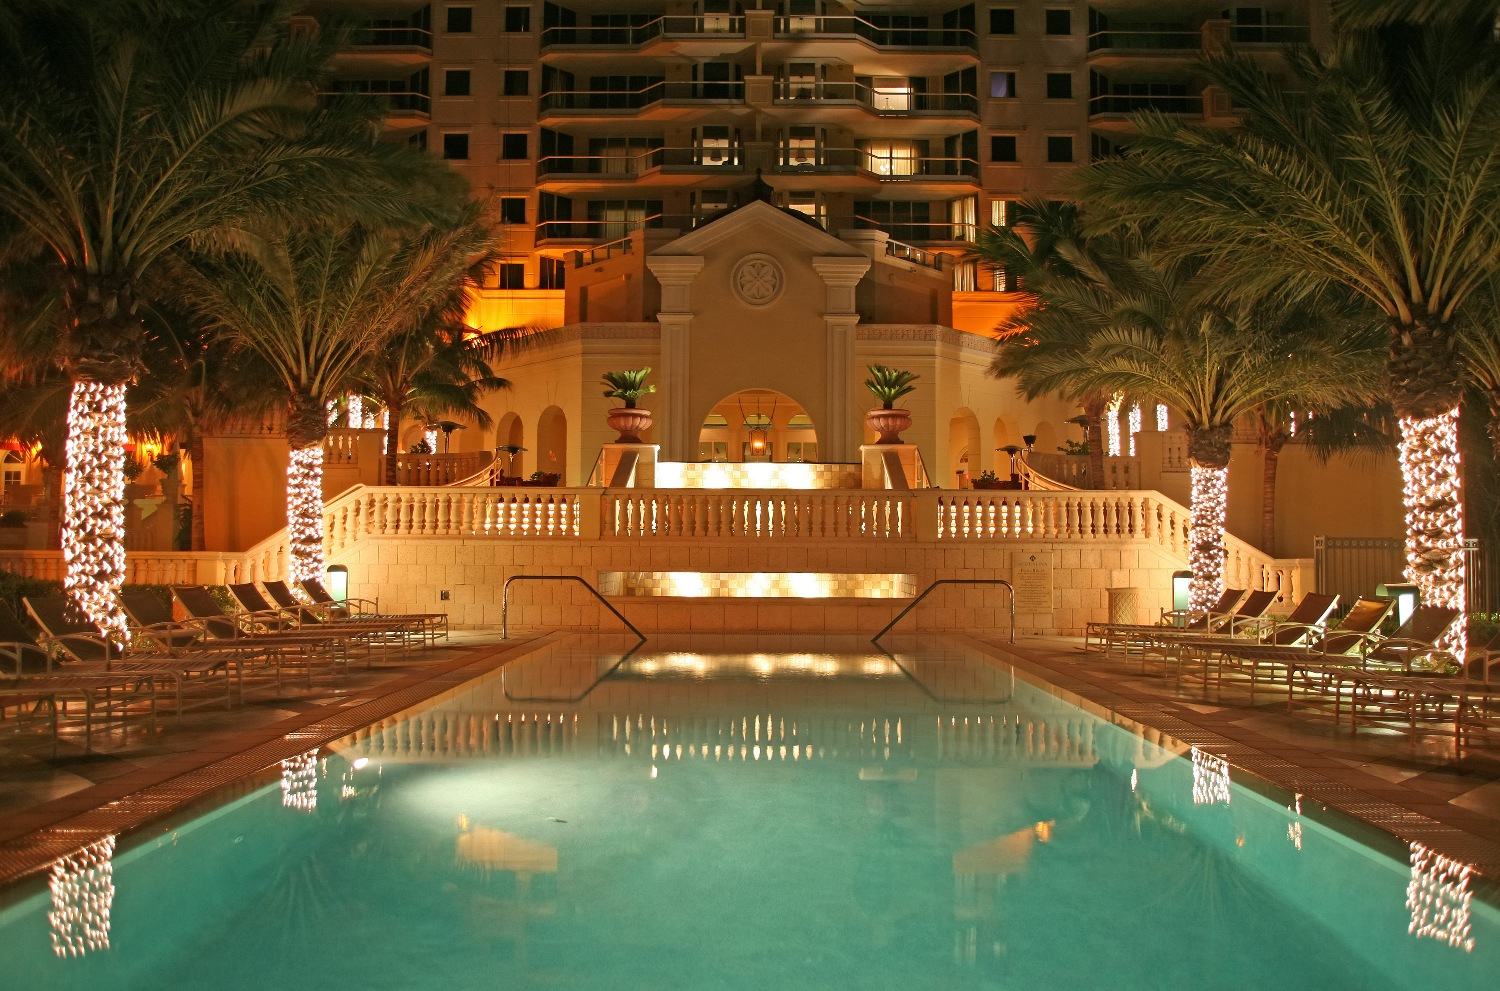 Acqualina - Image 5